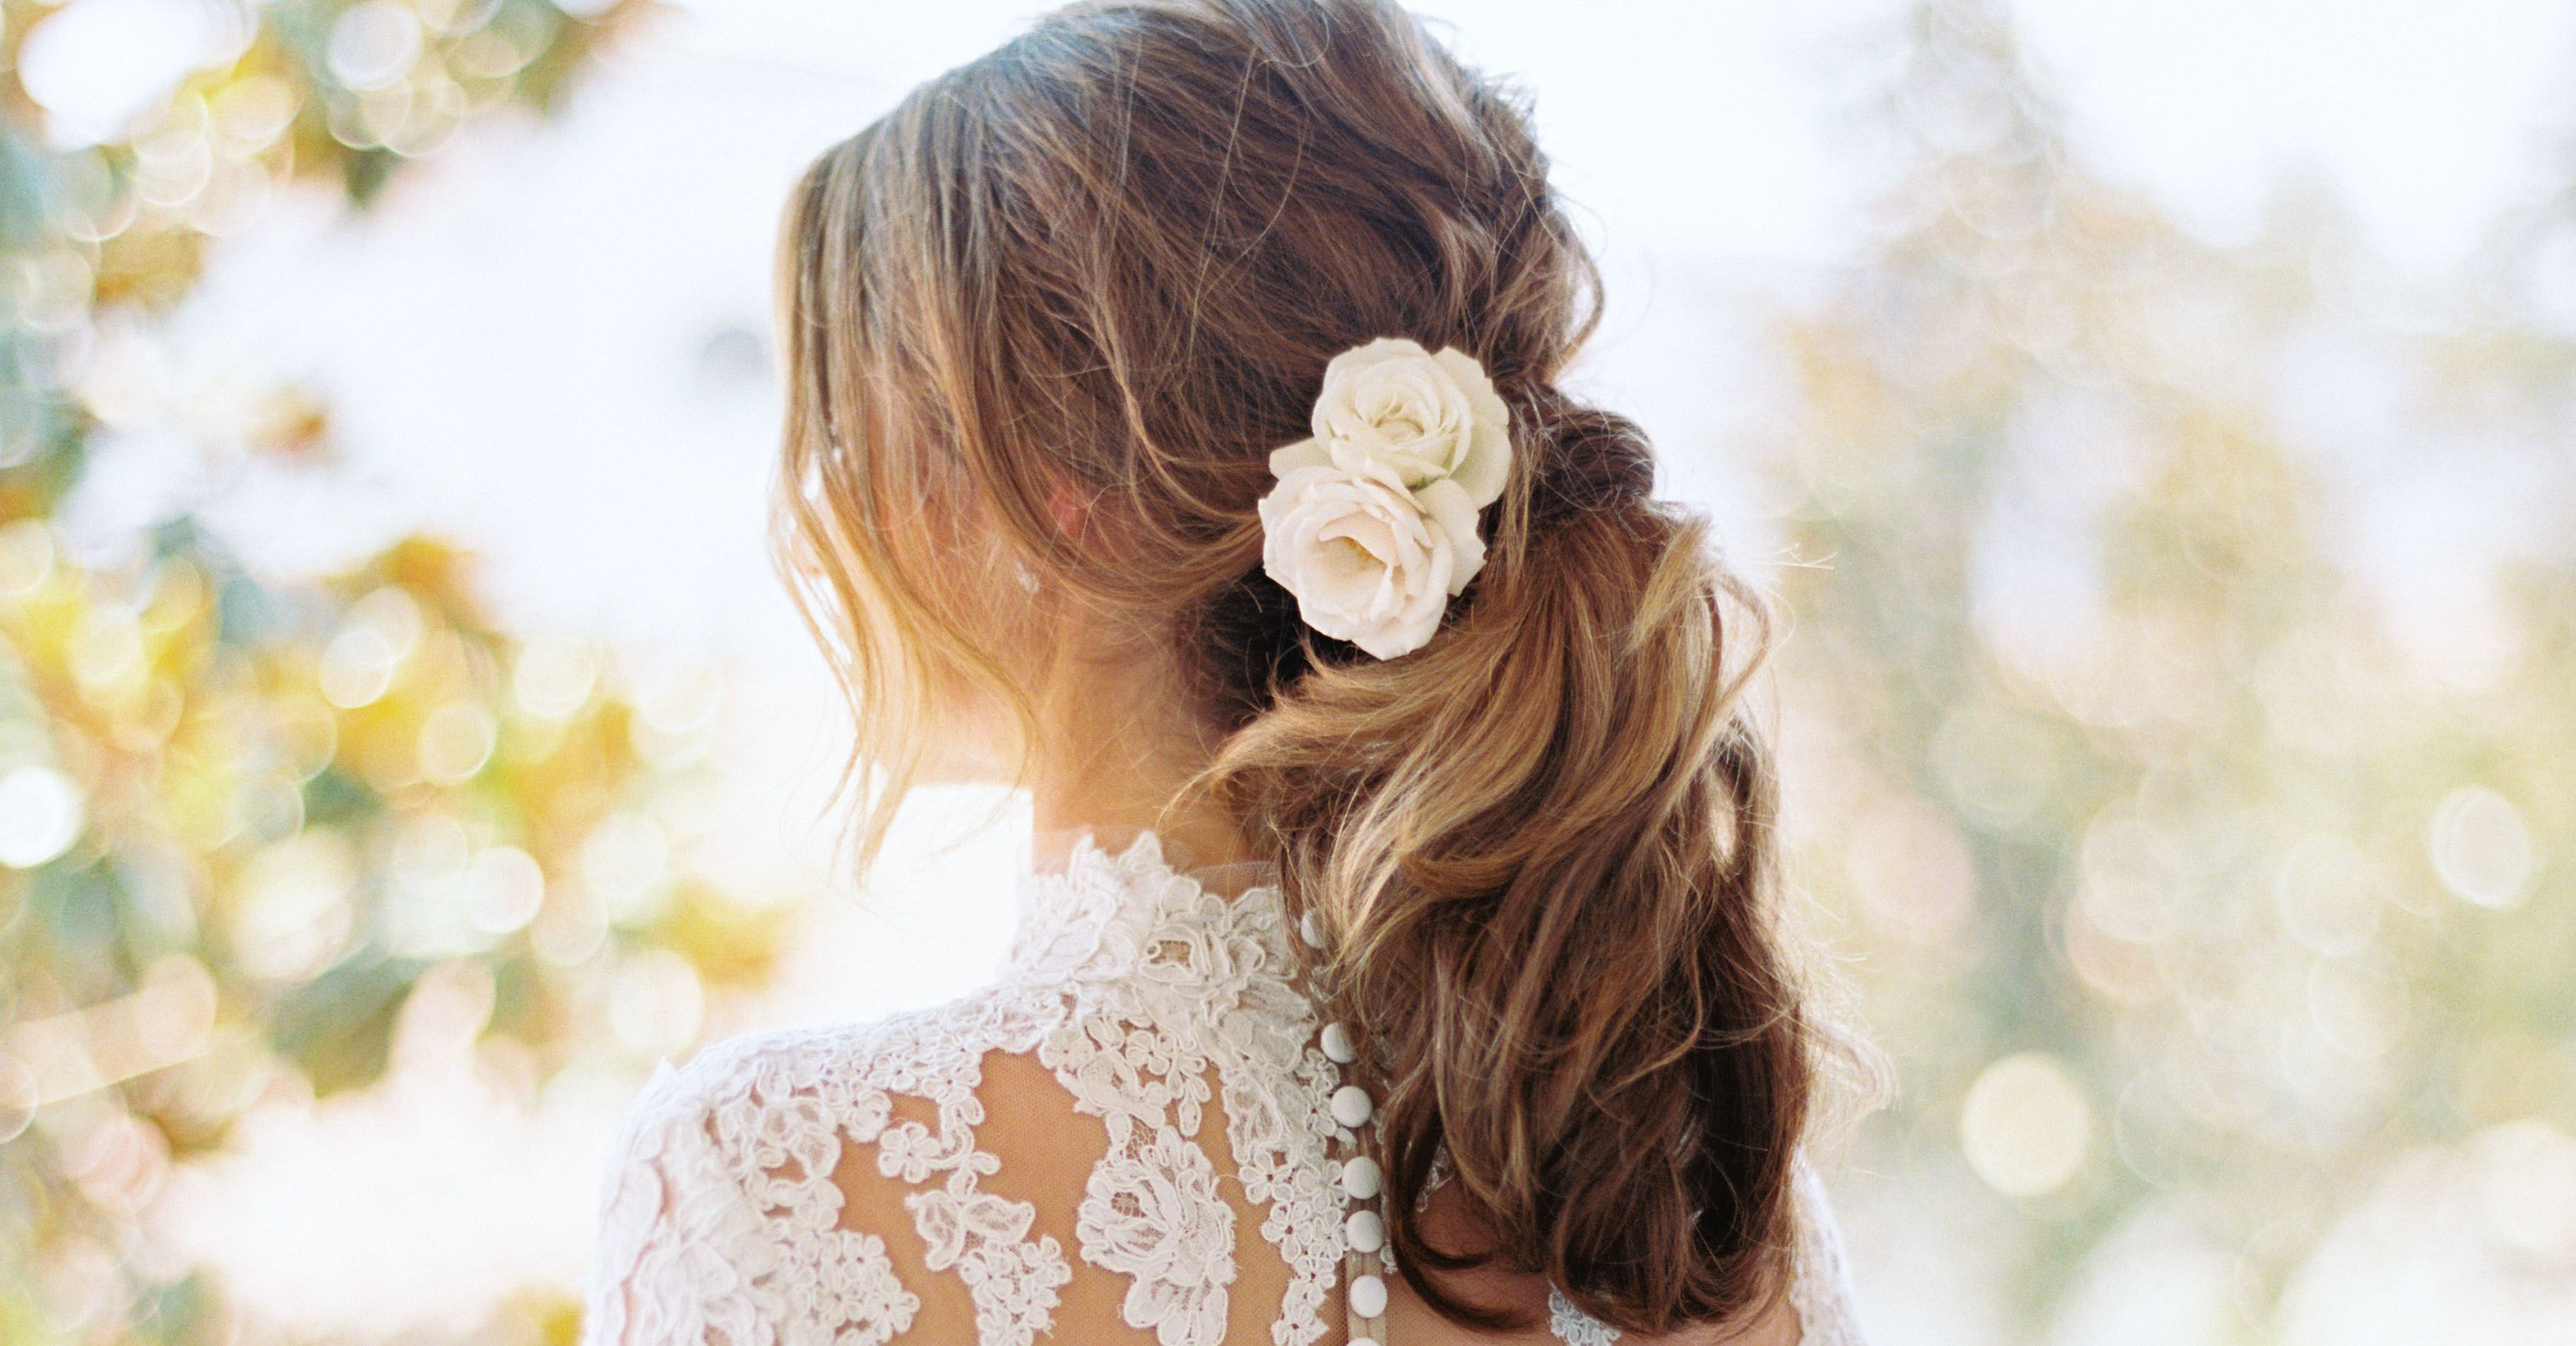 21 Ponytail Wedding Hairstyles